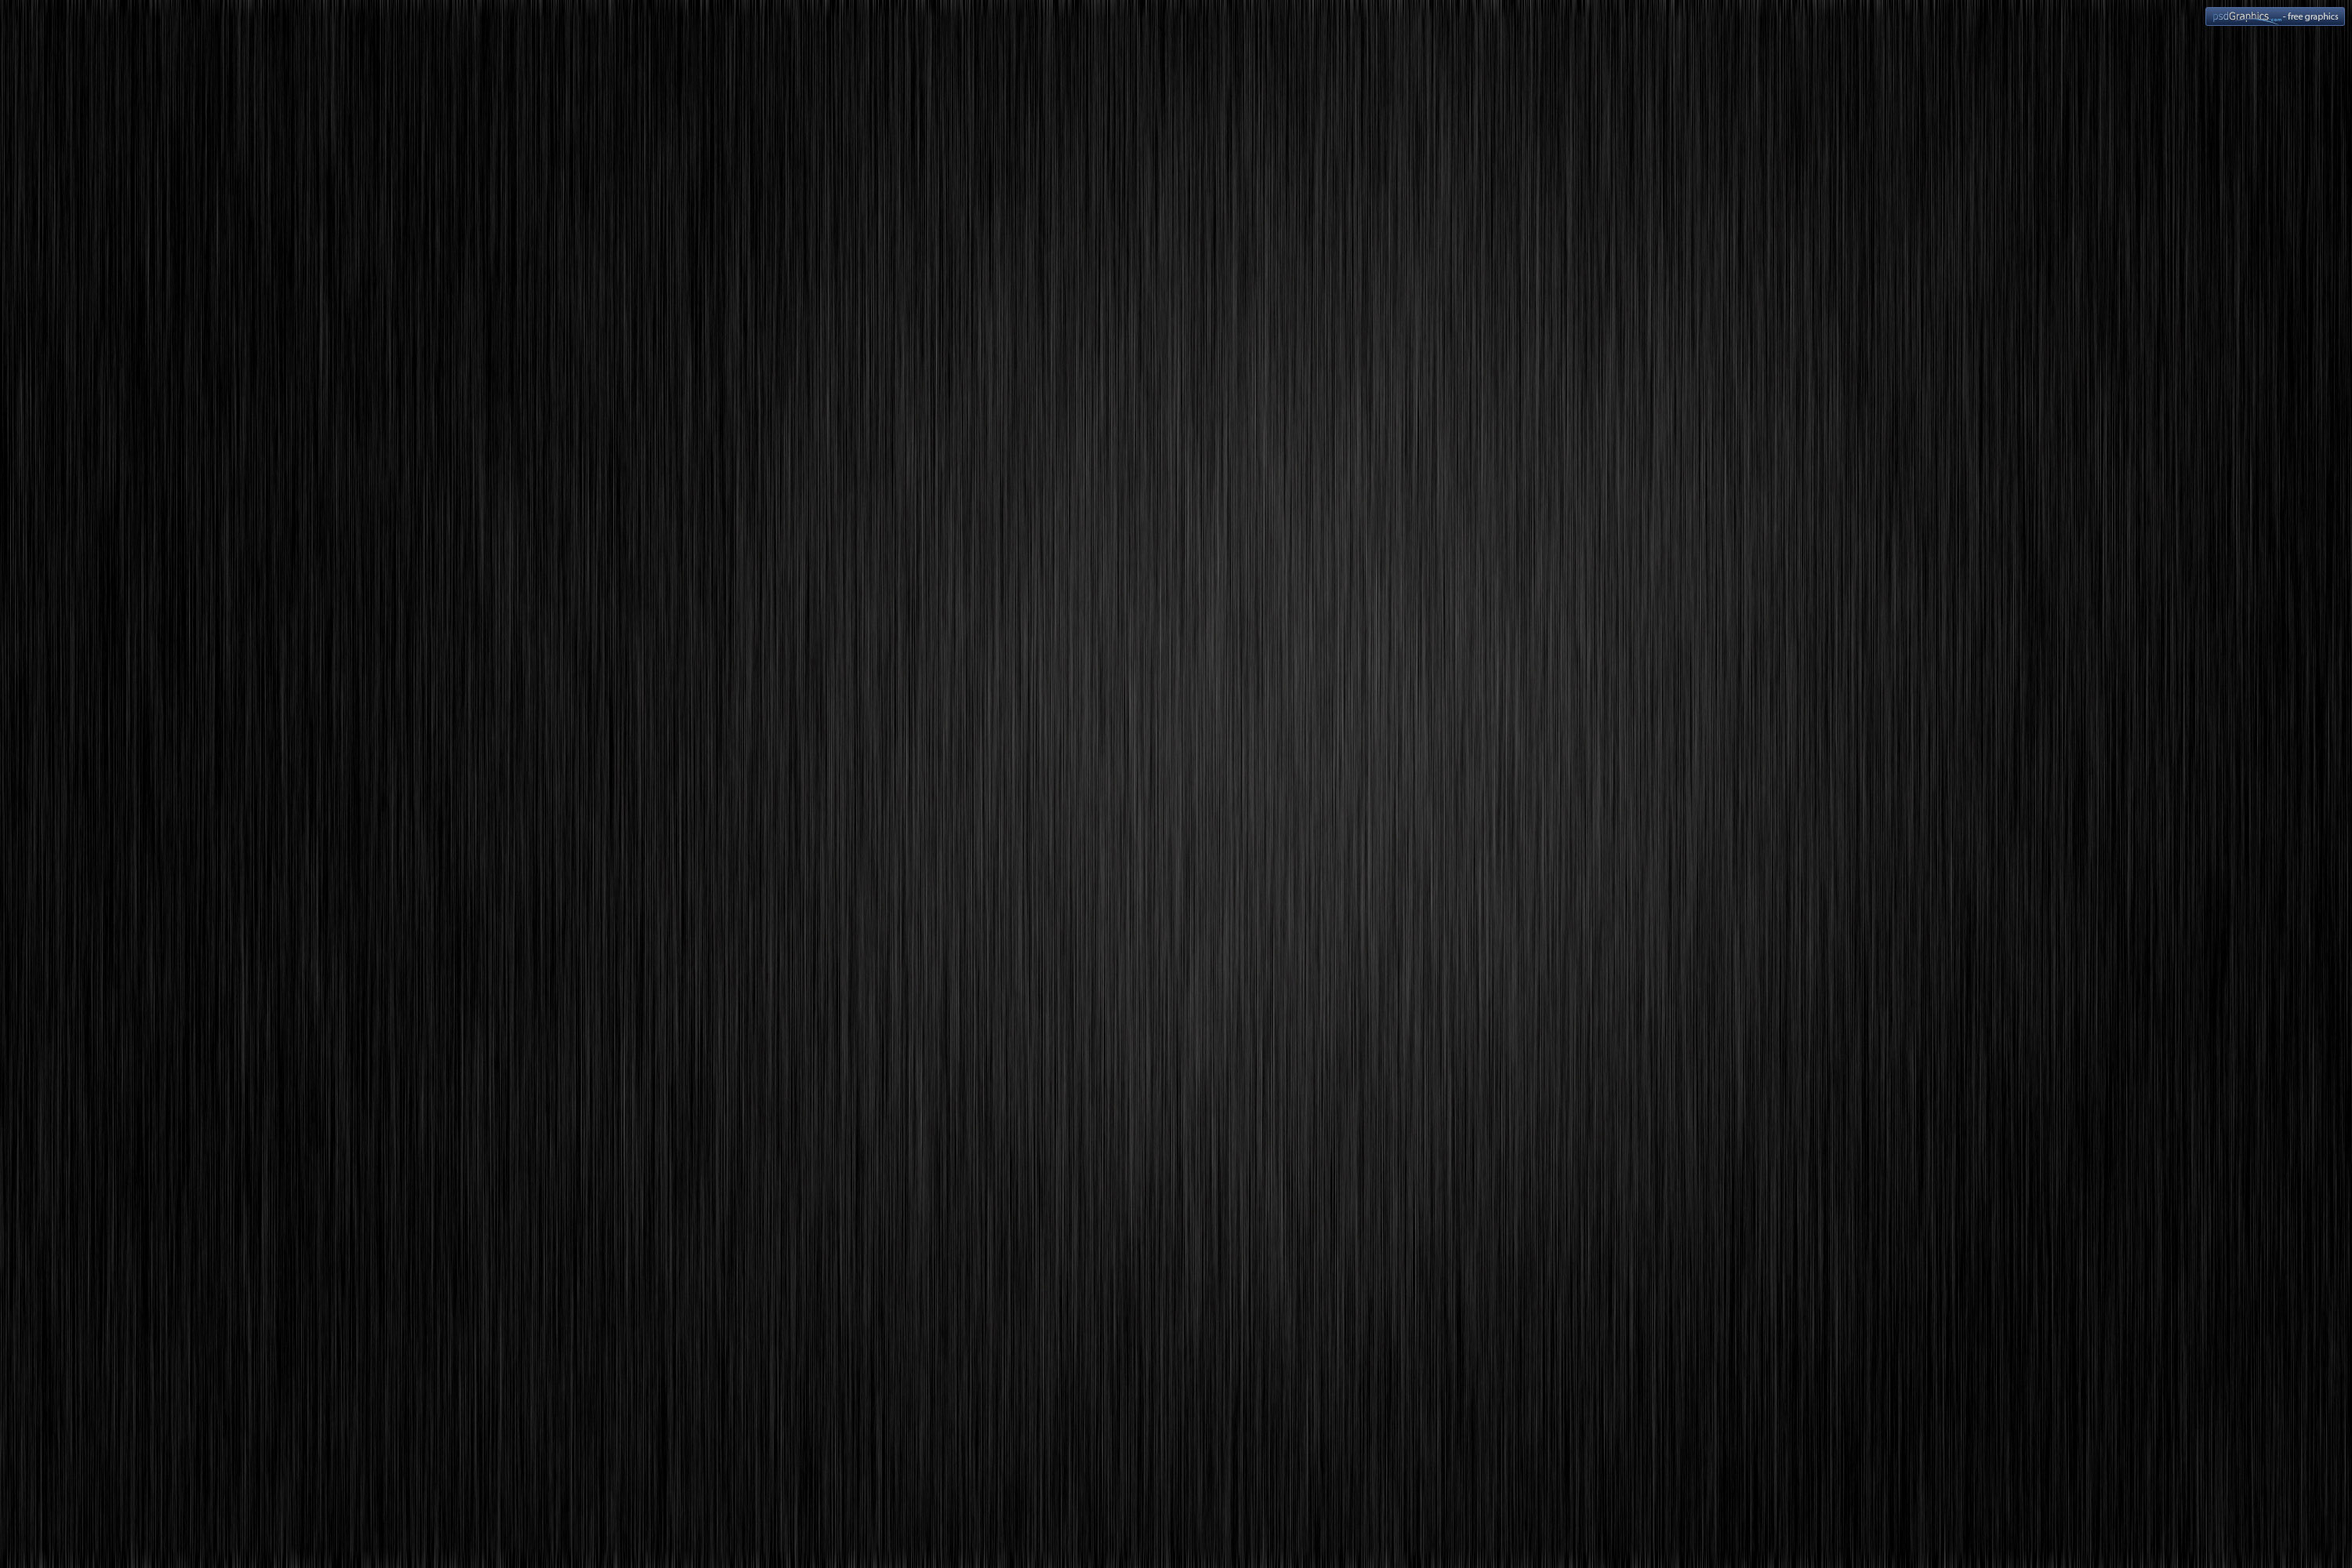 Scratch Wall Black Powerpoint Background Images #813